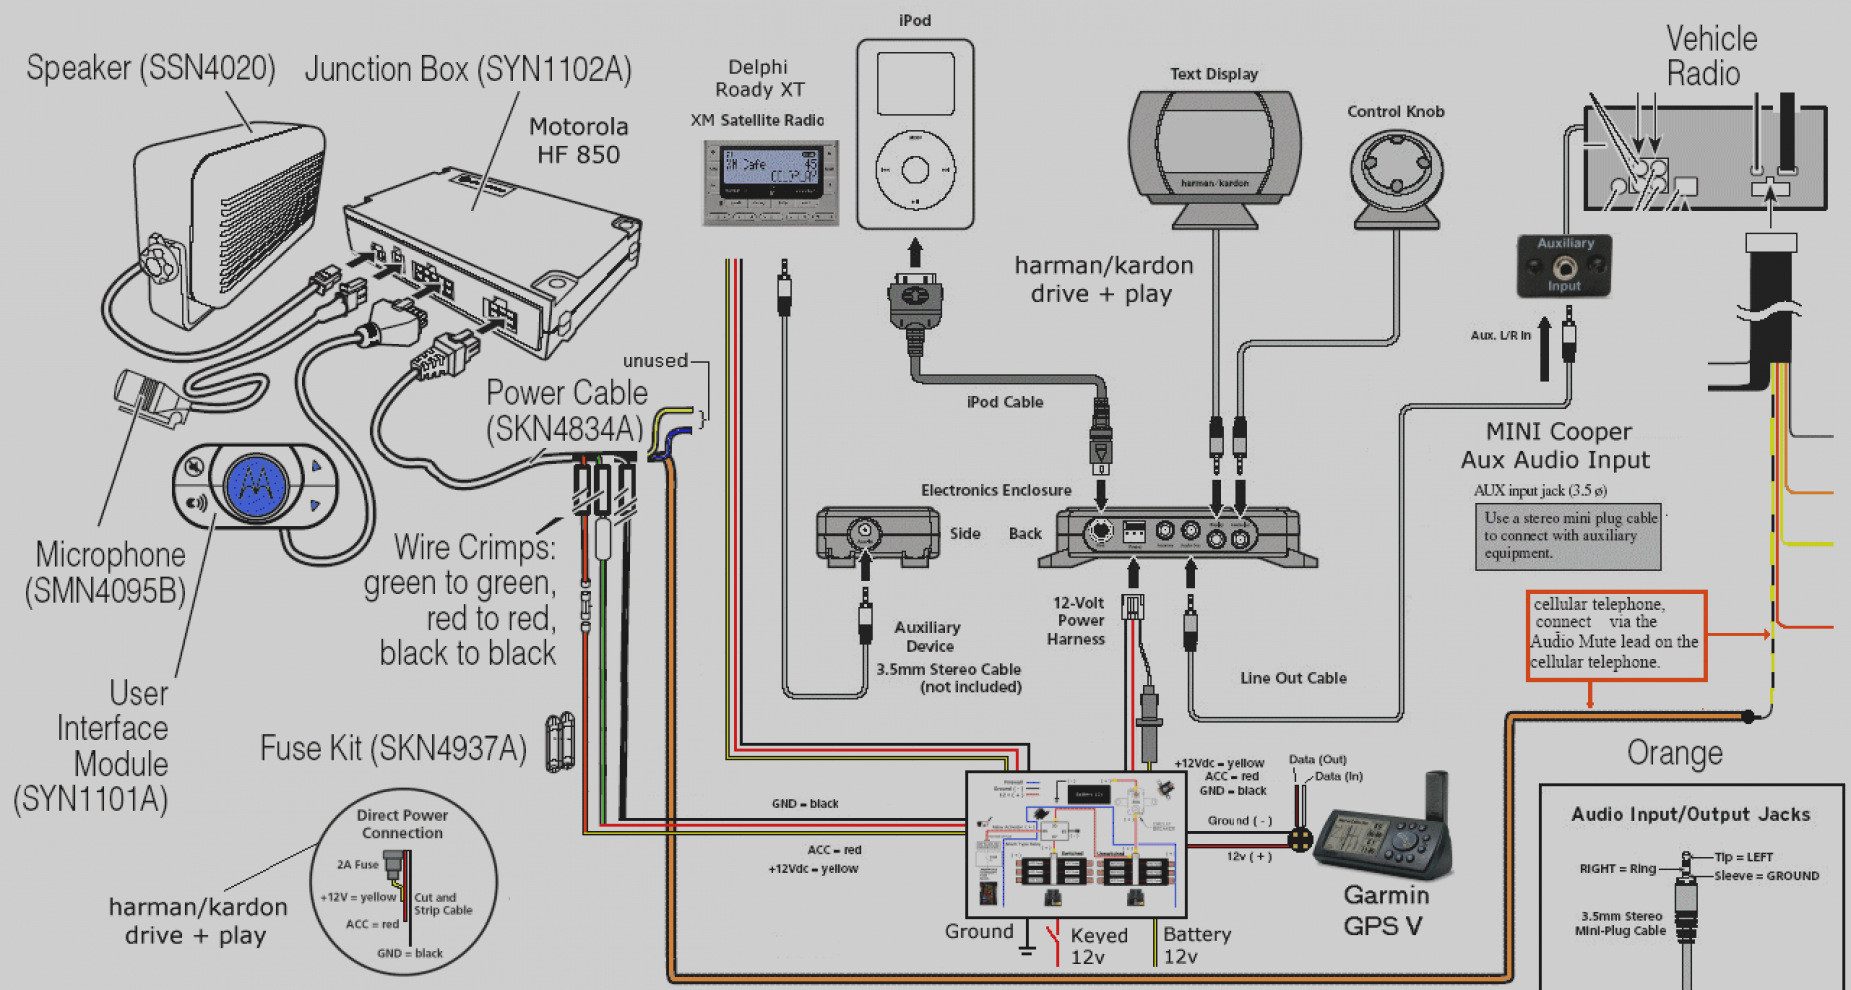 Garmin 740s Wiring Diagram Collection Sample 12 Volt Schematic Gps Antenna Depilacija Me Striker 4 Download